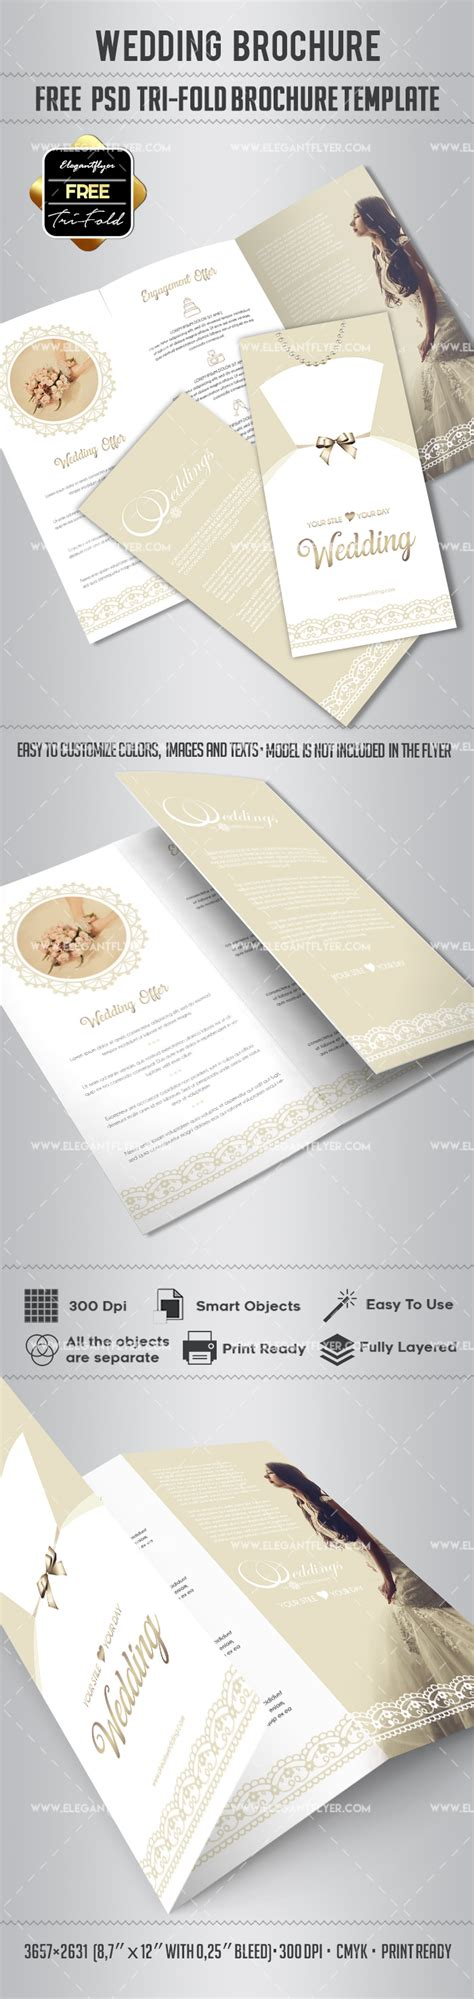 Tri Fold Brochure Templates Free By Elegantflyer Free Wedding Tri Fold Psd Brochure Template By Elegantflyer